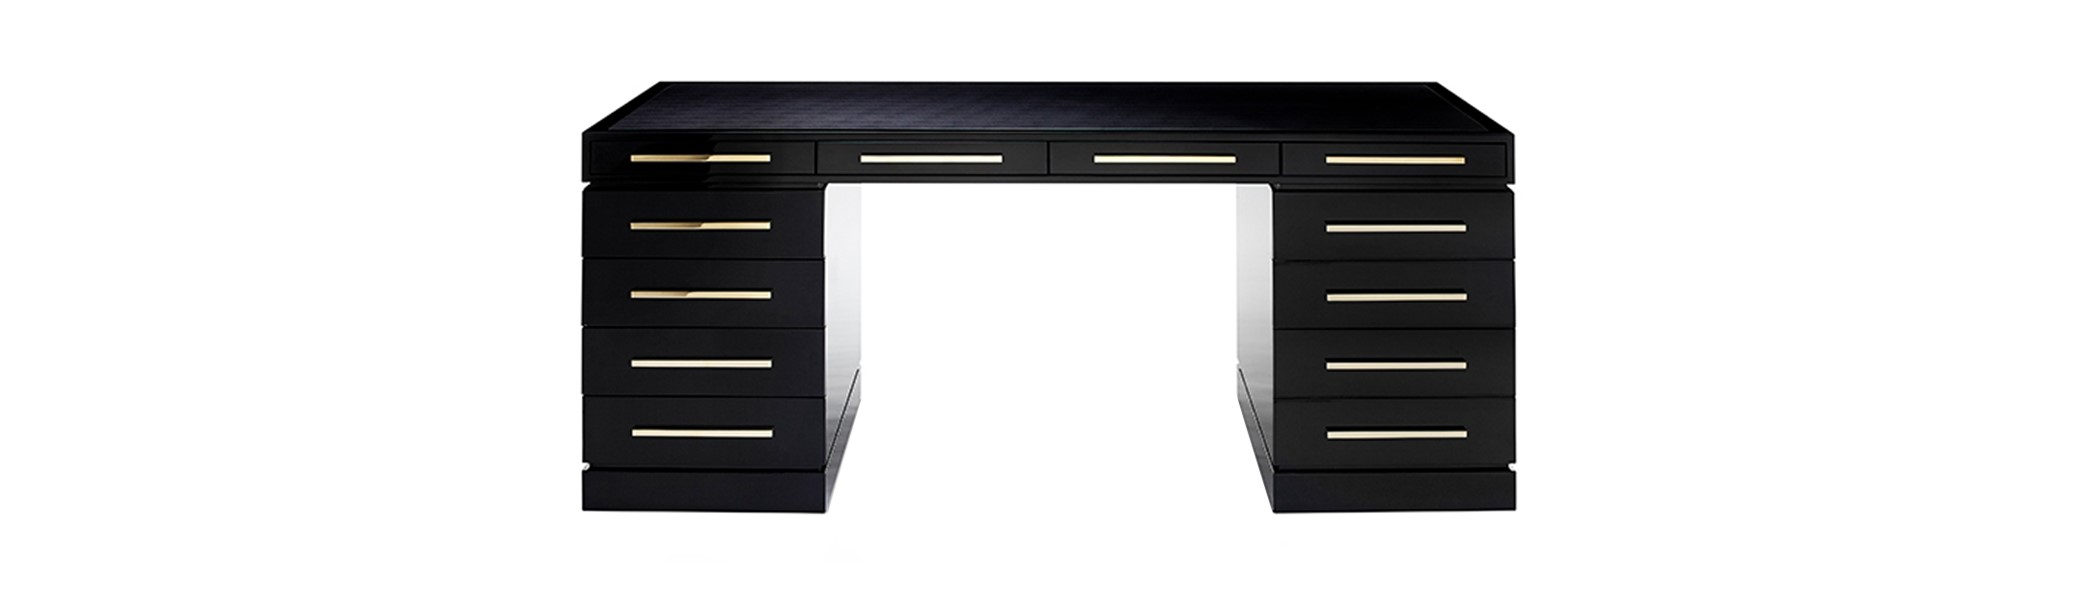 davidson-london-wellington-desk-high-gloss-black-lacquer-polished-brass-handles.jpg